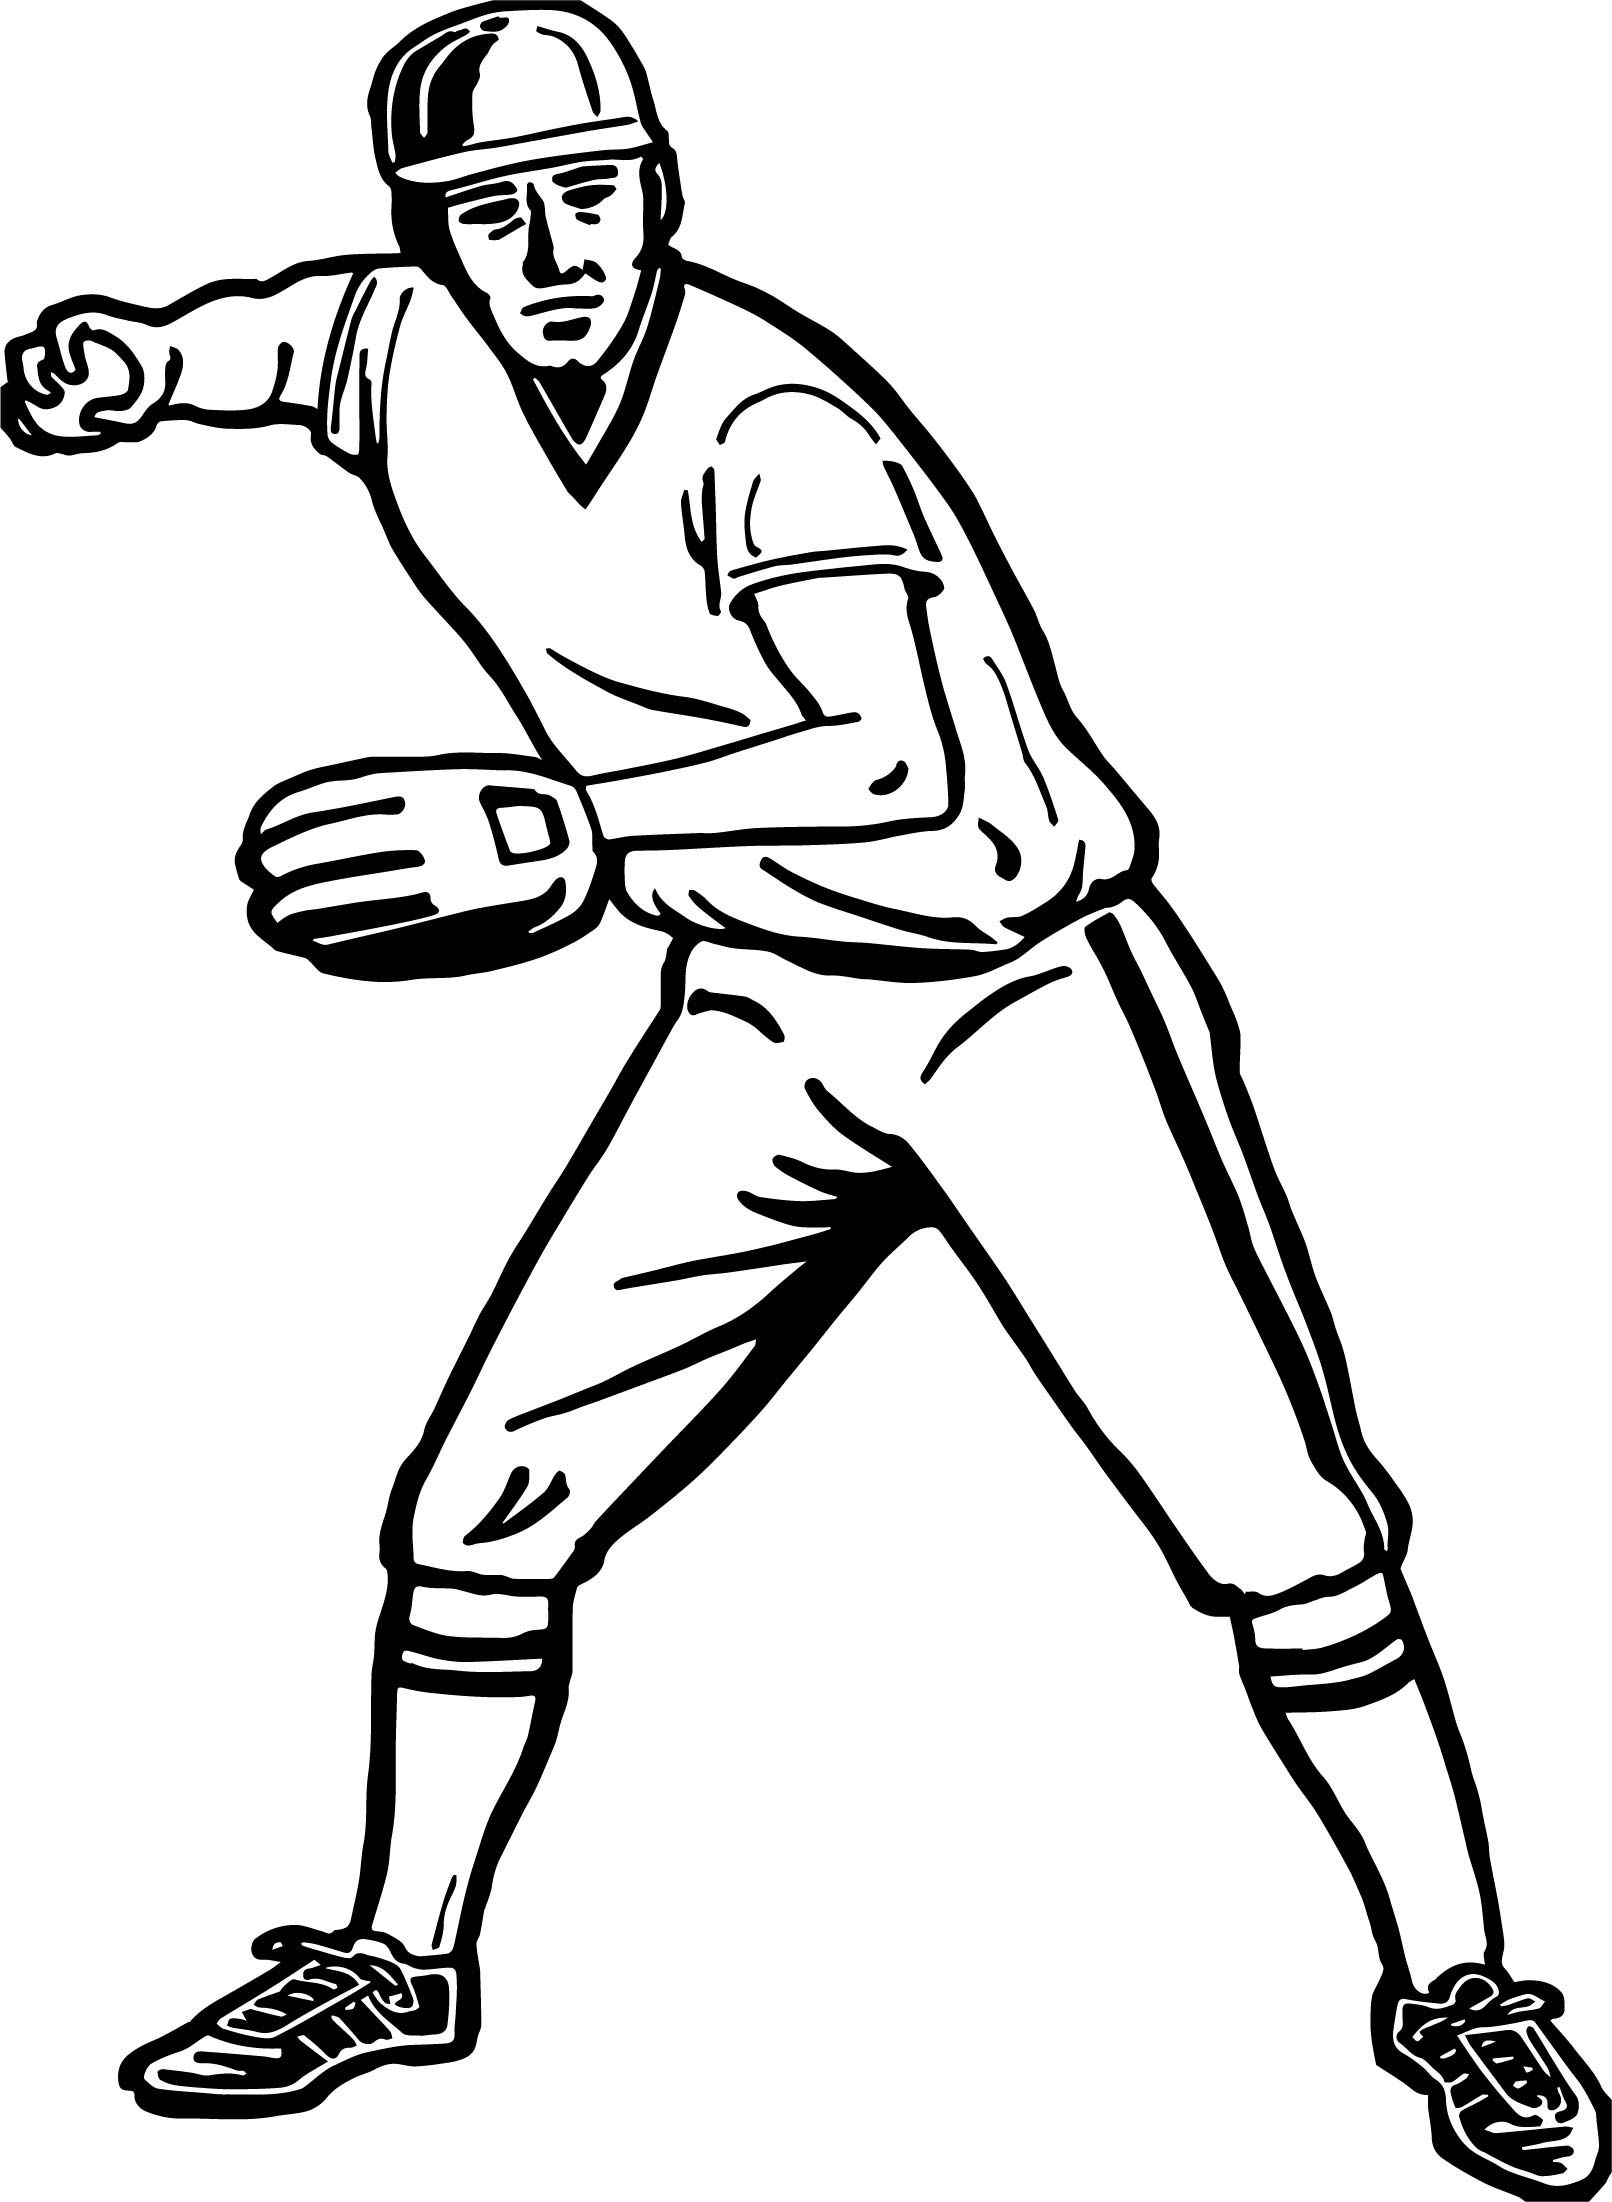 baseball themed coloring pages how to draw jordan jumpman flight logo jordan themed coloring themed pages baseball